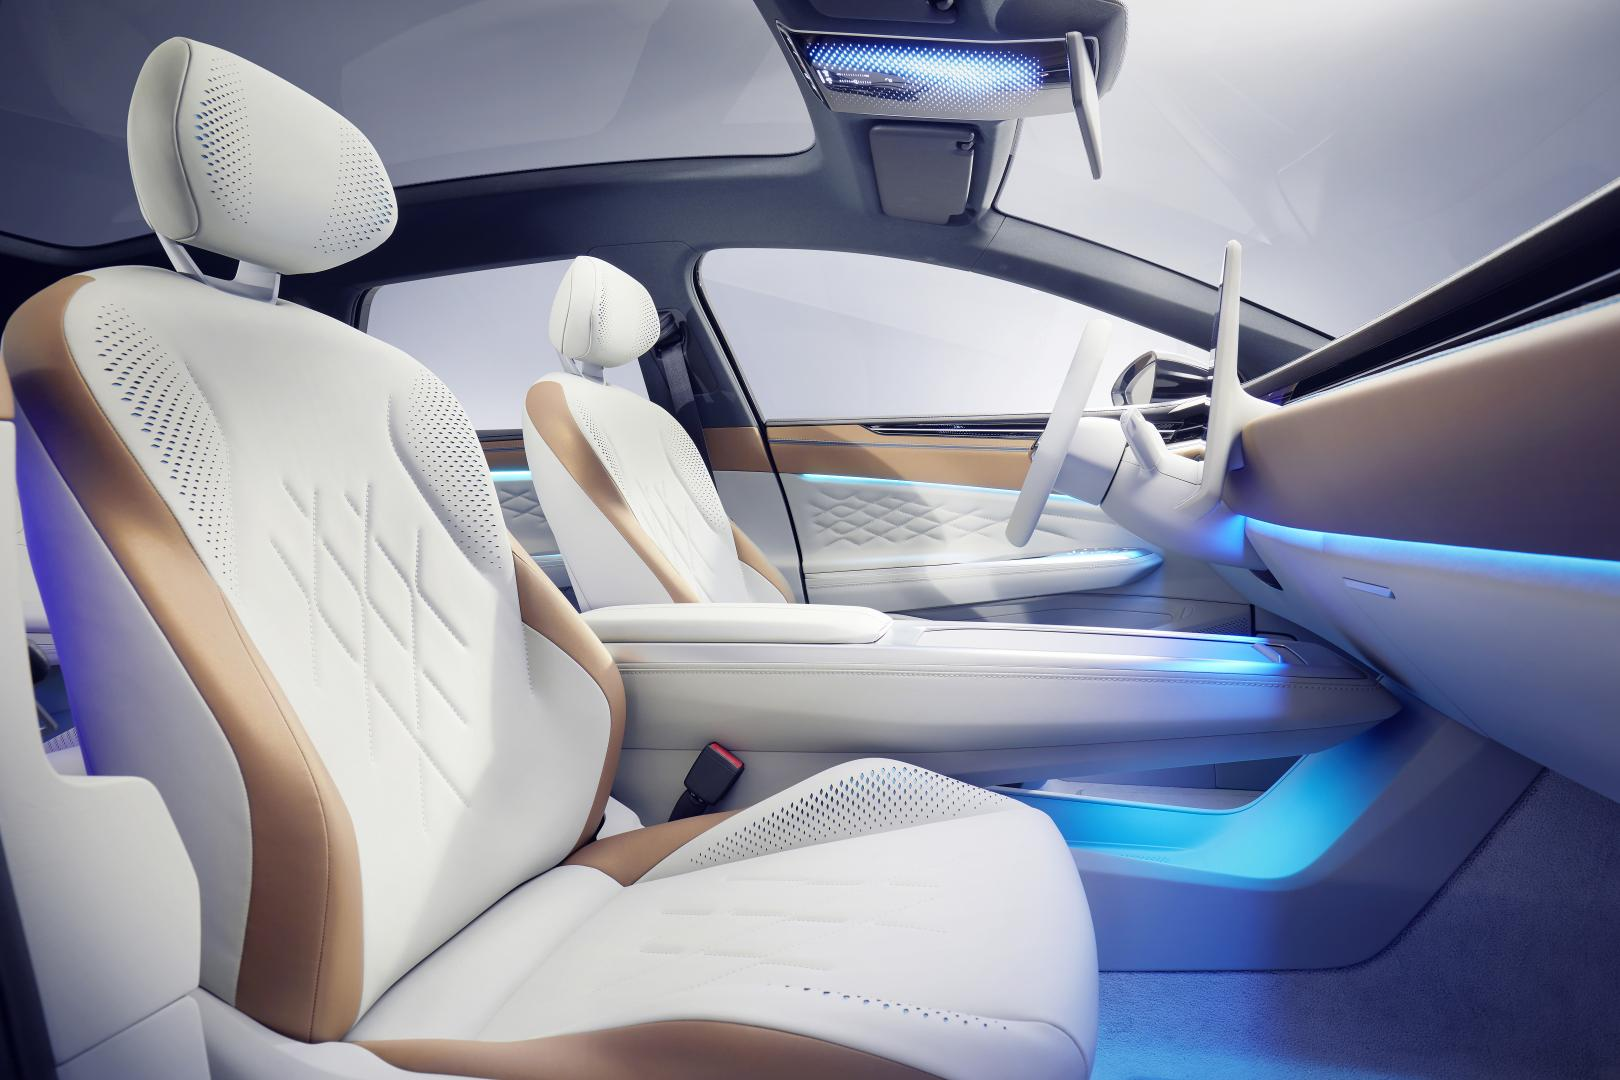 Volkswagen ID. Space Vizzion interieur voorin